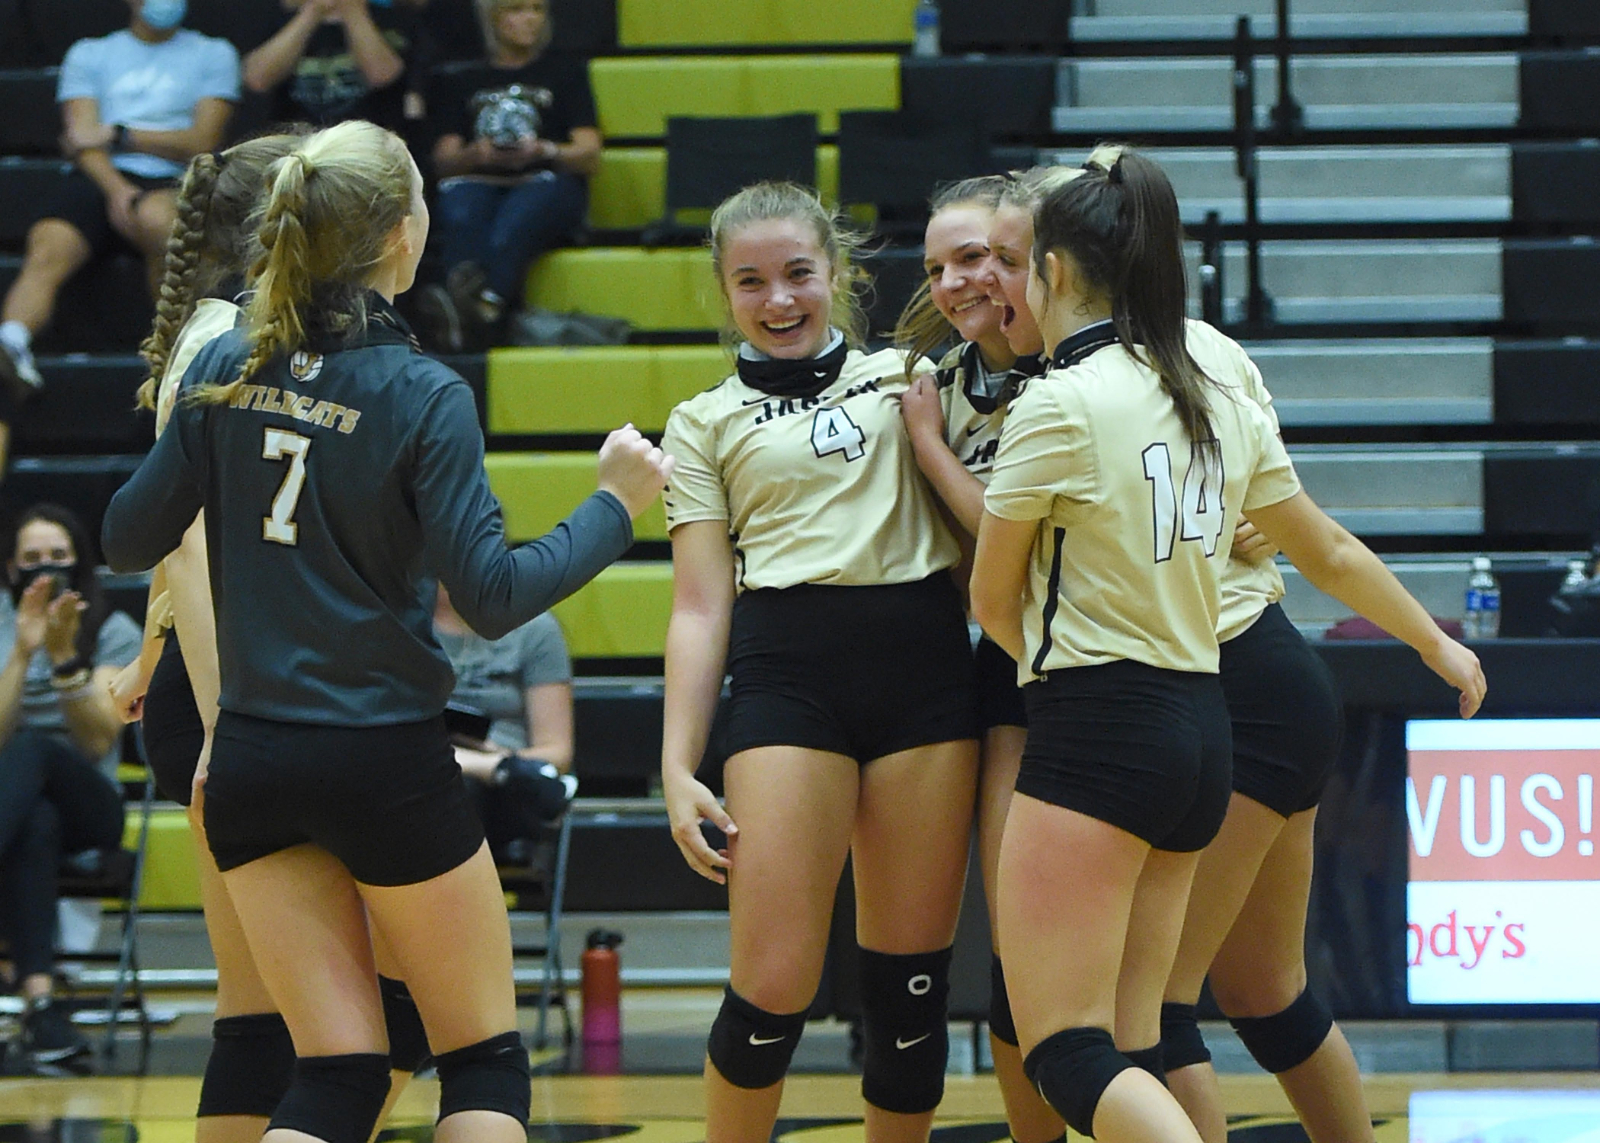 Volleyball – Jasper vs EV North (JV)